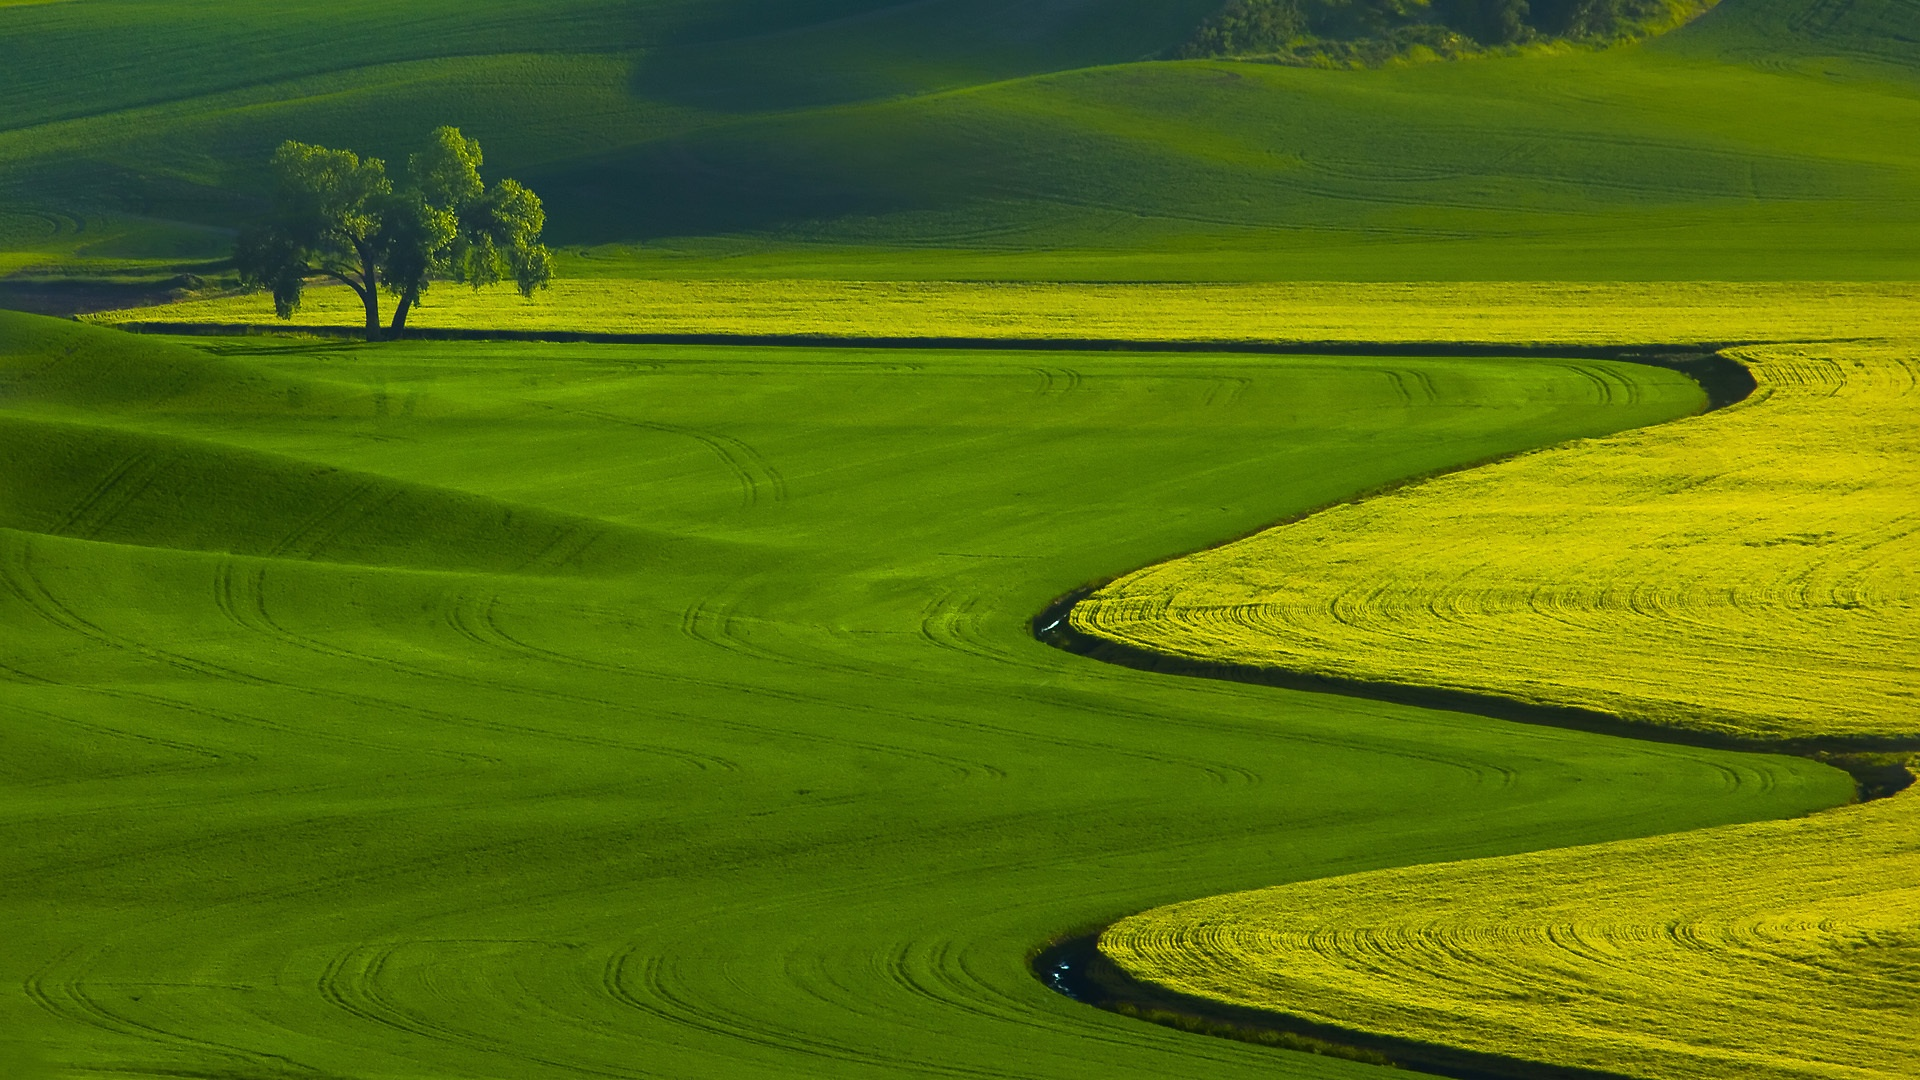 Full hd wallpaper full hd 1080p wallpaper hd widescreen desktop - Green Grass Field Wallpaper